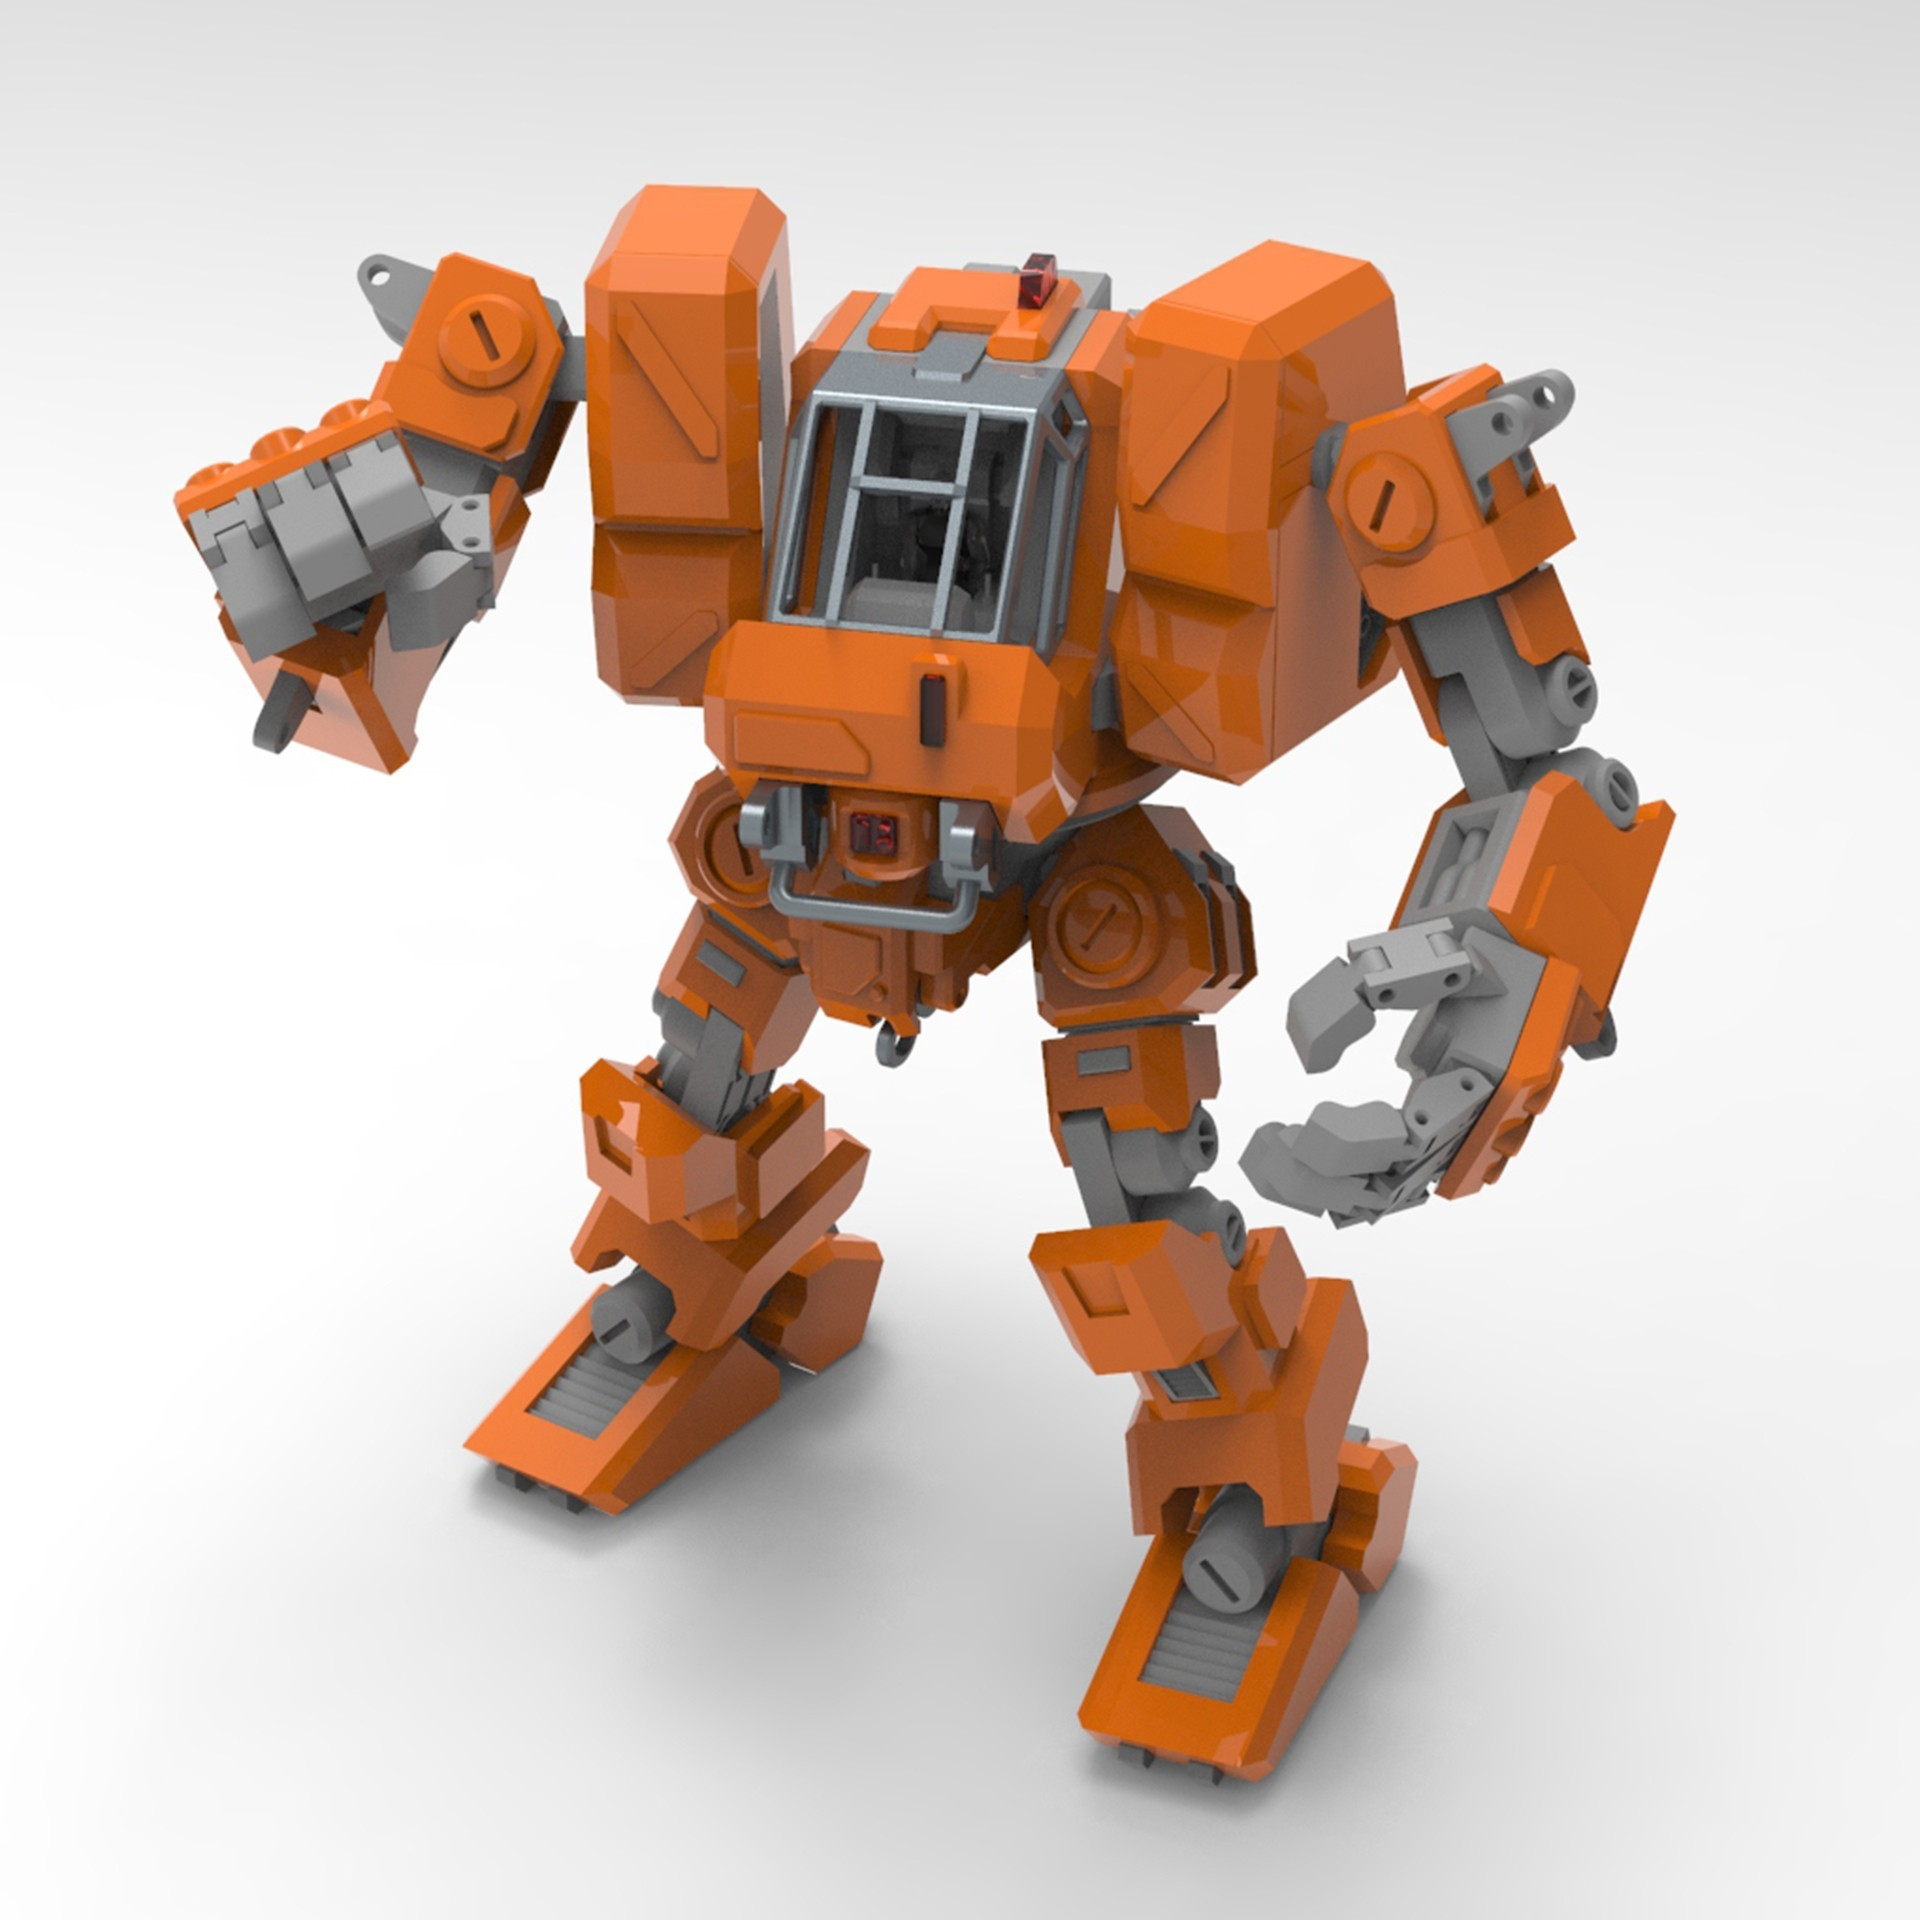 001.jpg Download free STL file Heavy Construction Walker (Action Figure) • Object to 3D print, Jwoong